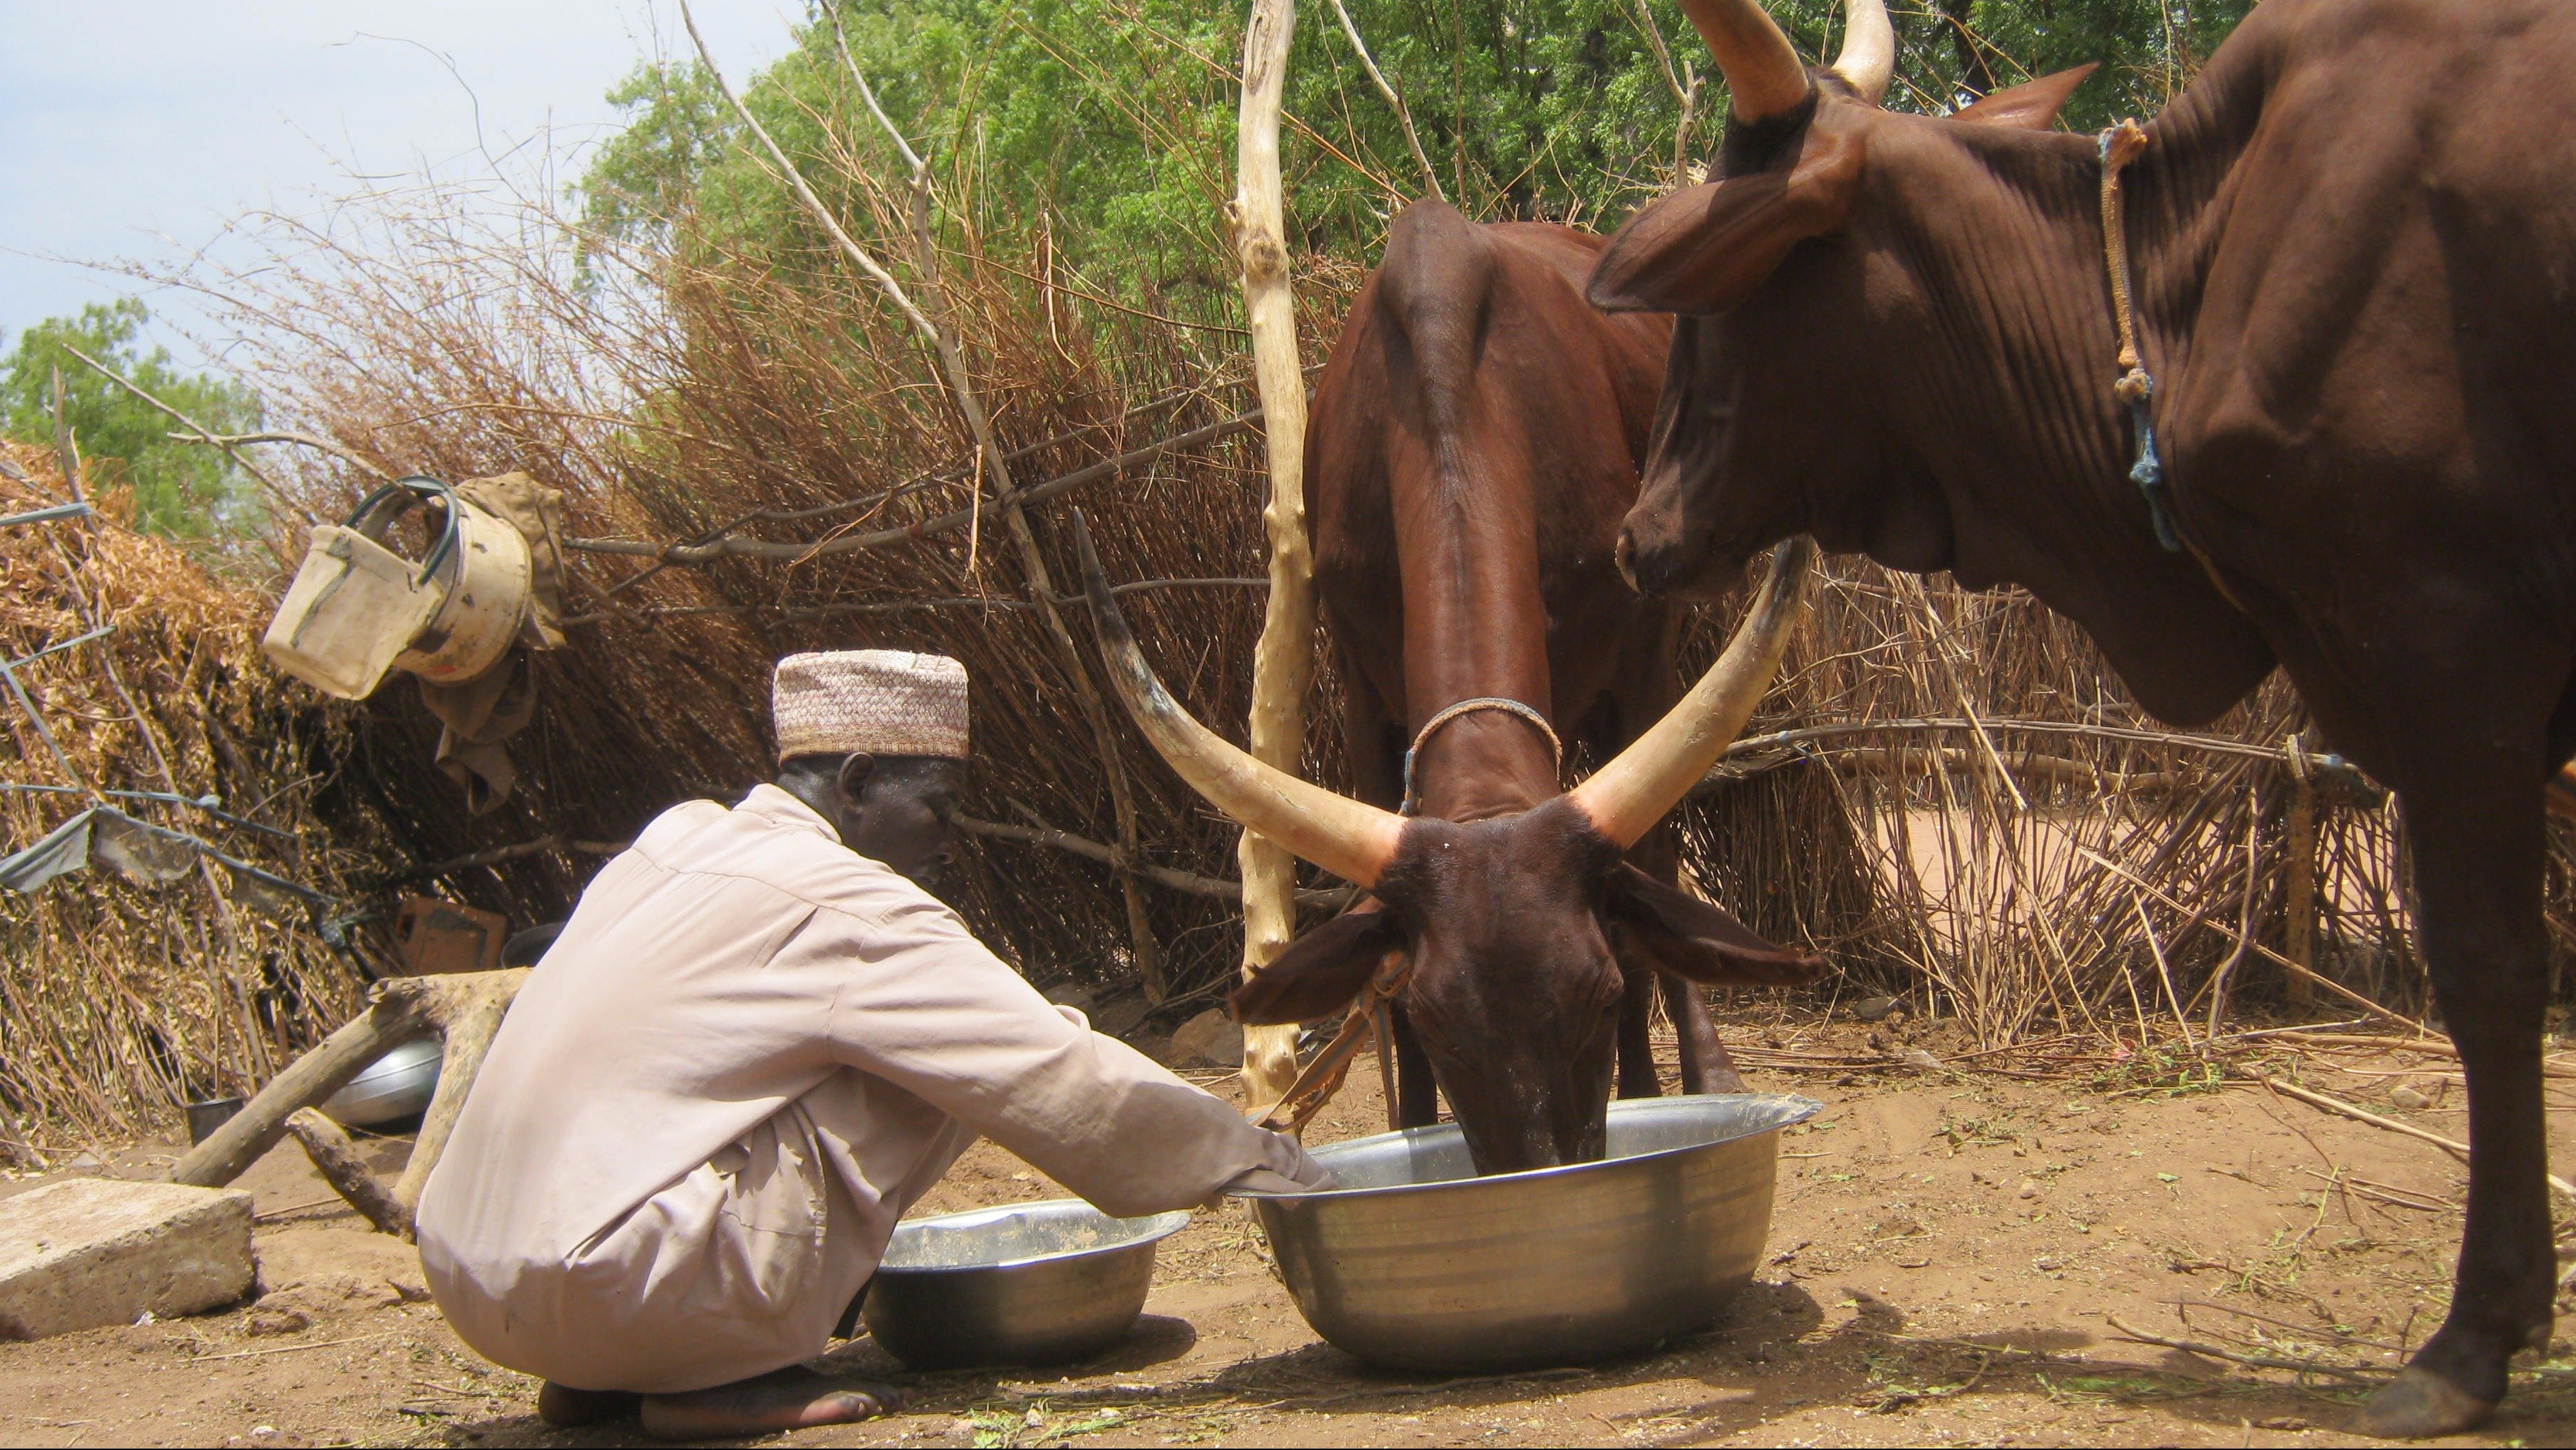 Bulama Buba Kadai feeds his remaining two cows. The rest of his herd, which included more than 100 head of cattle, was destroyed by Boko Haram.